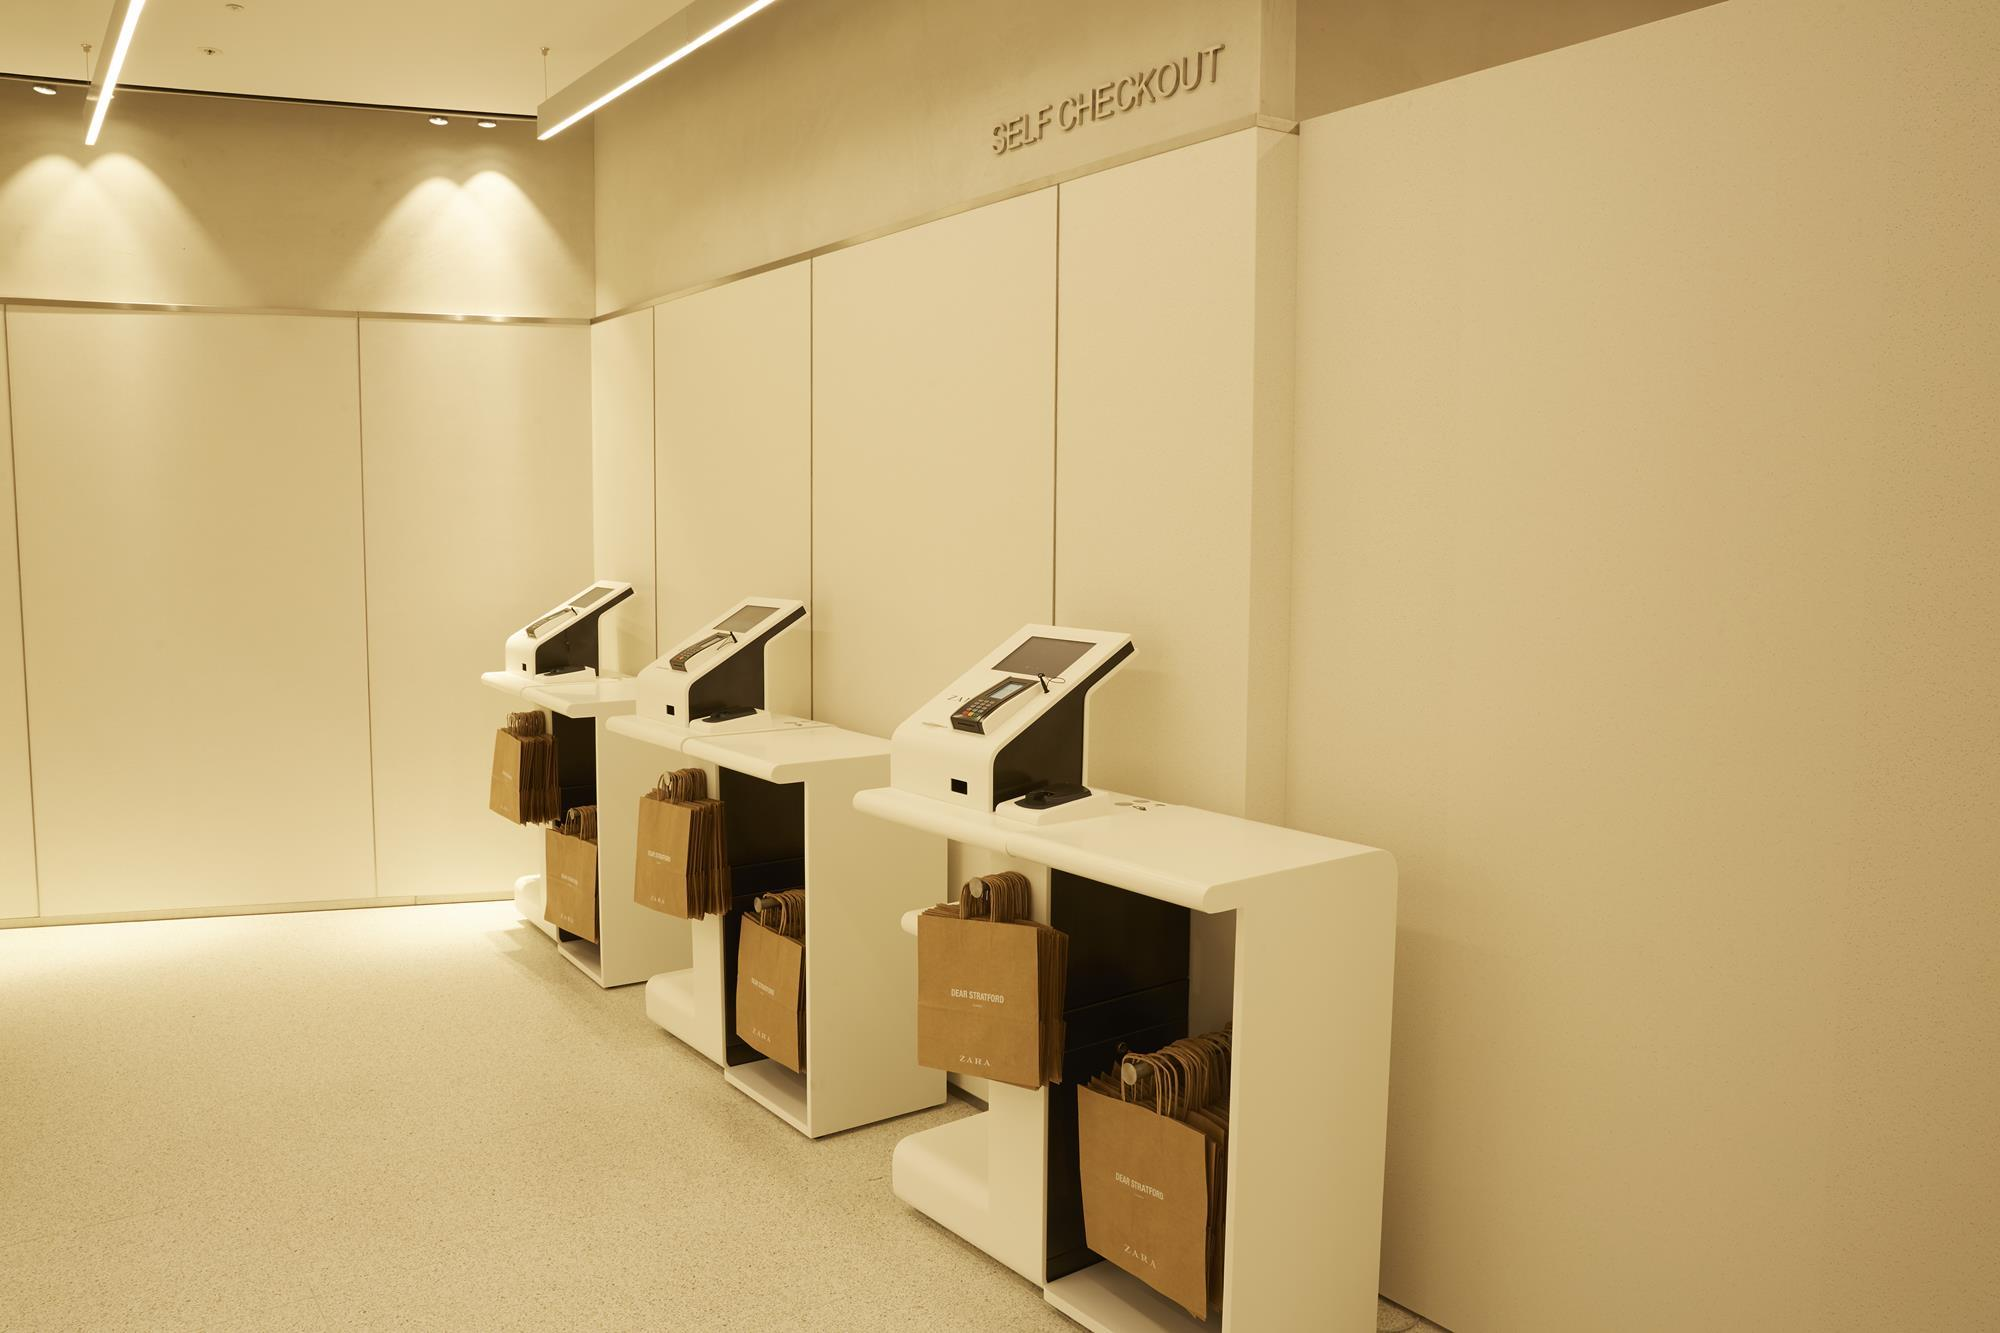 7c3ae6b8 In pictures: Zara's first digitally integrated store | Photo gallery |  Retail Week